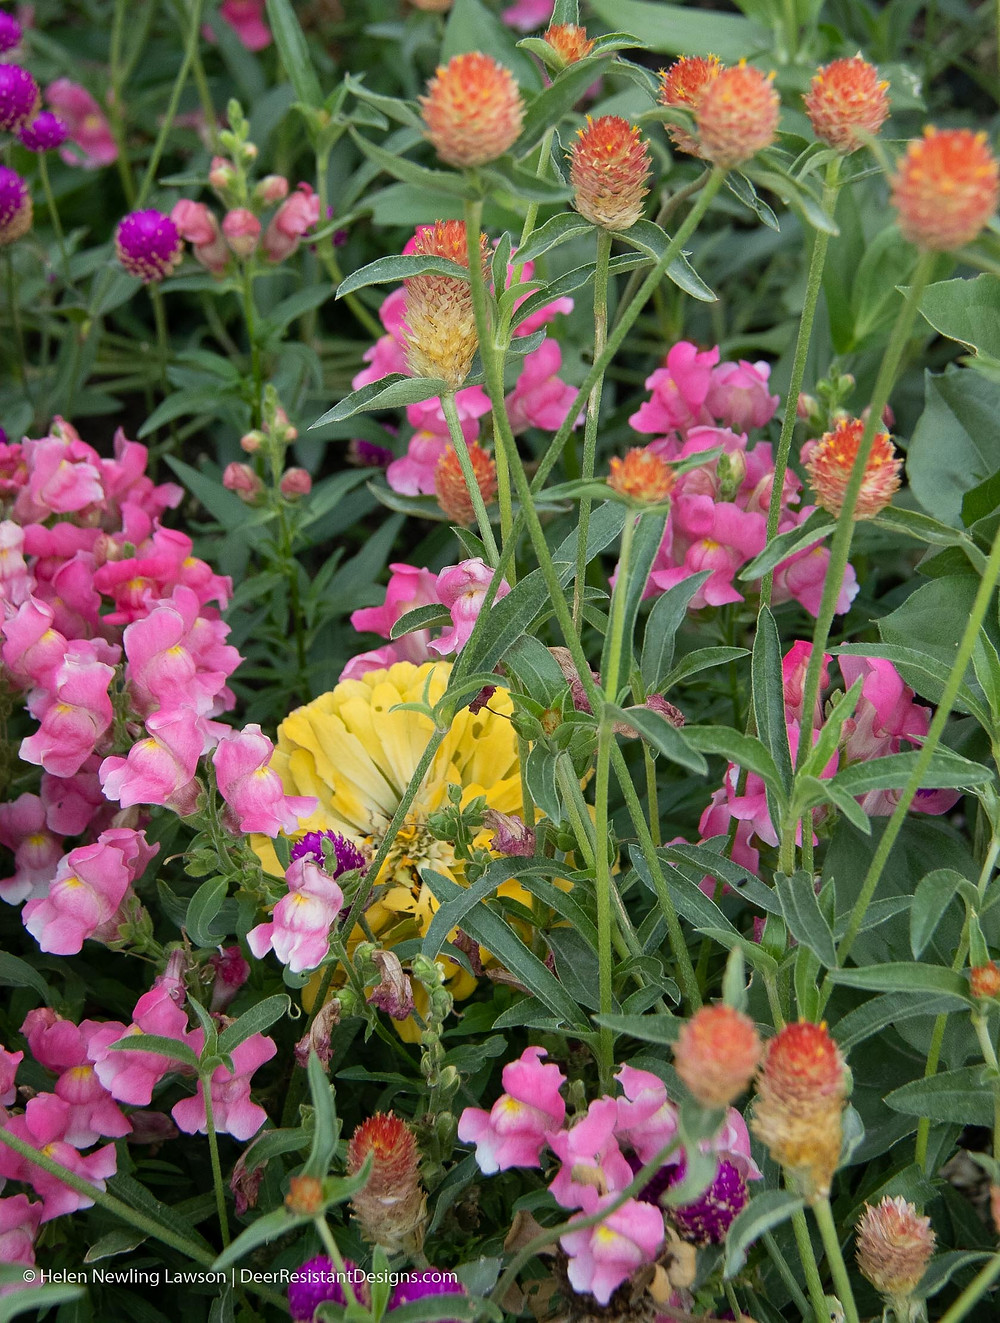 Snapdragons, zinnias and gomphrena are all deer-resistant annuals that grow well together